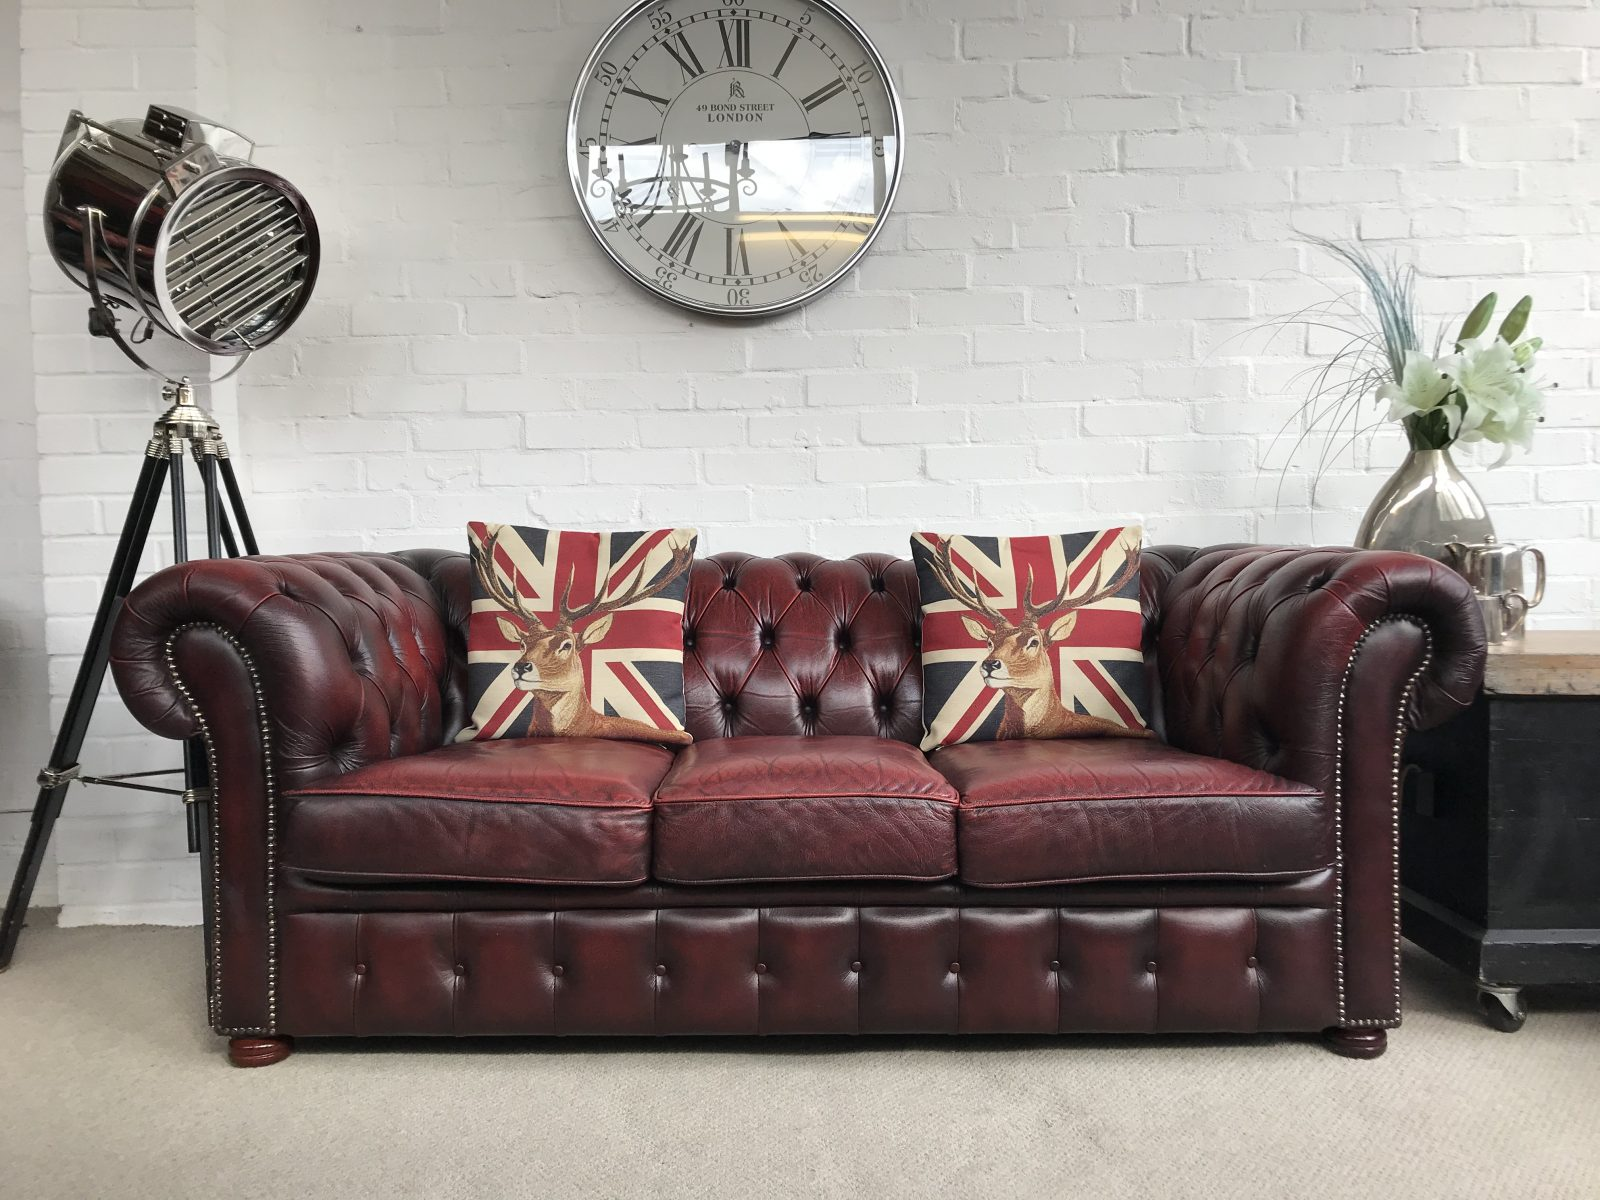 Vintage Oxblood Chesterfield Sofa.